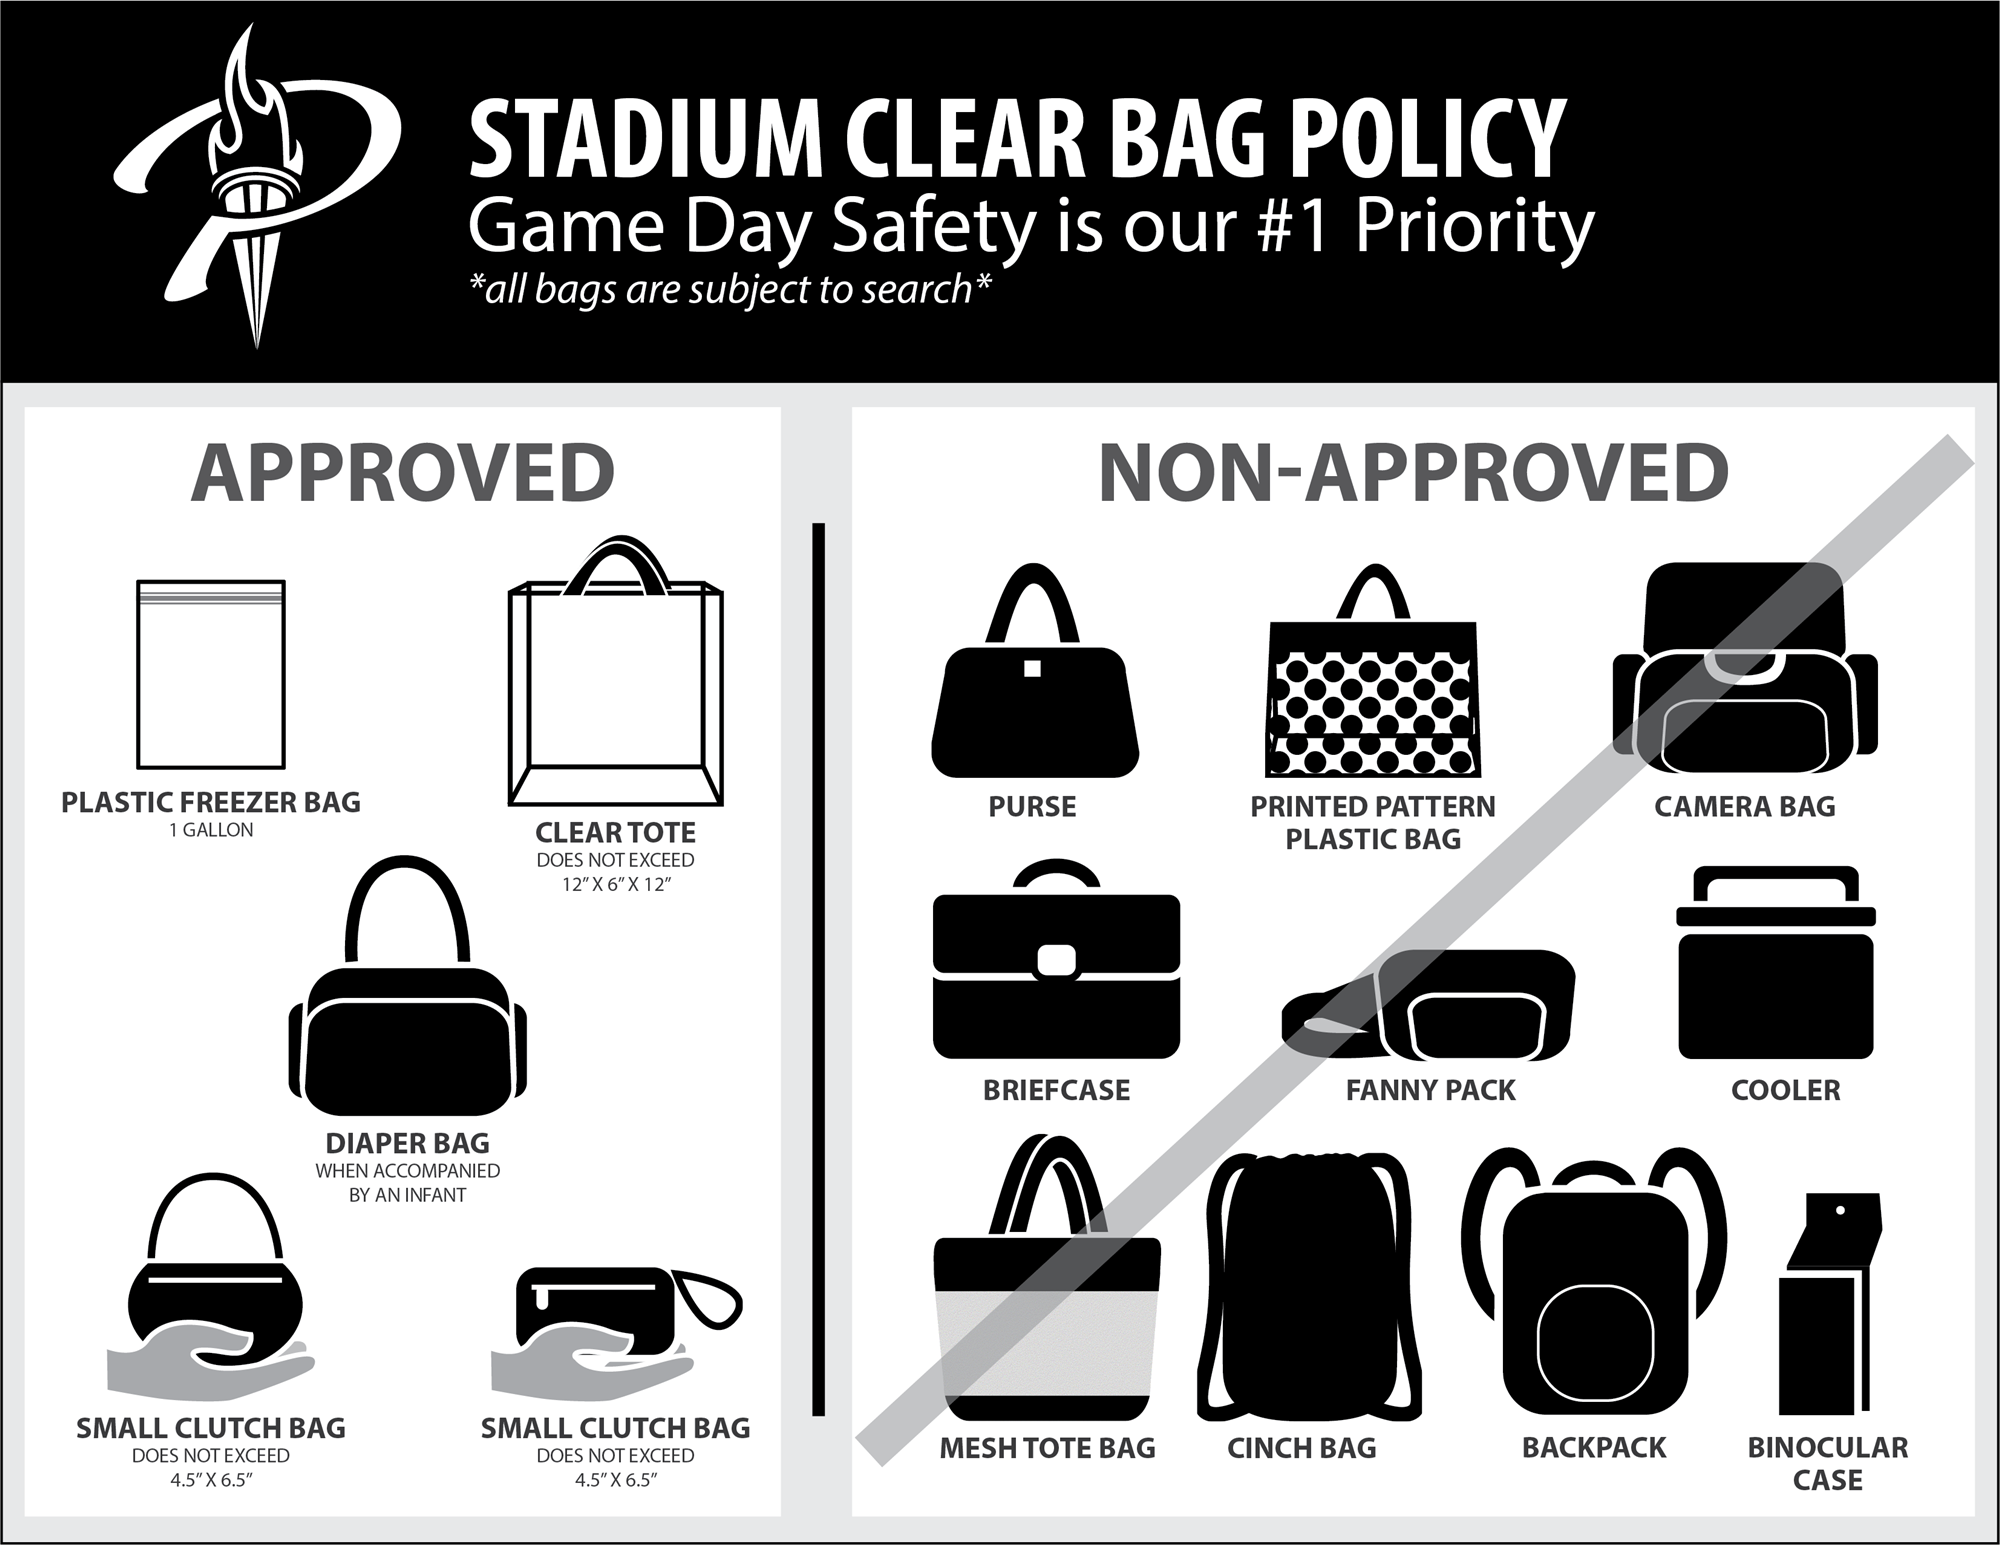 bag policy